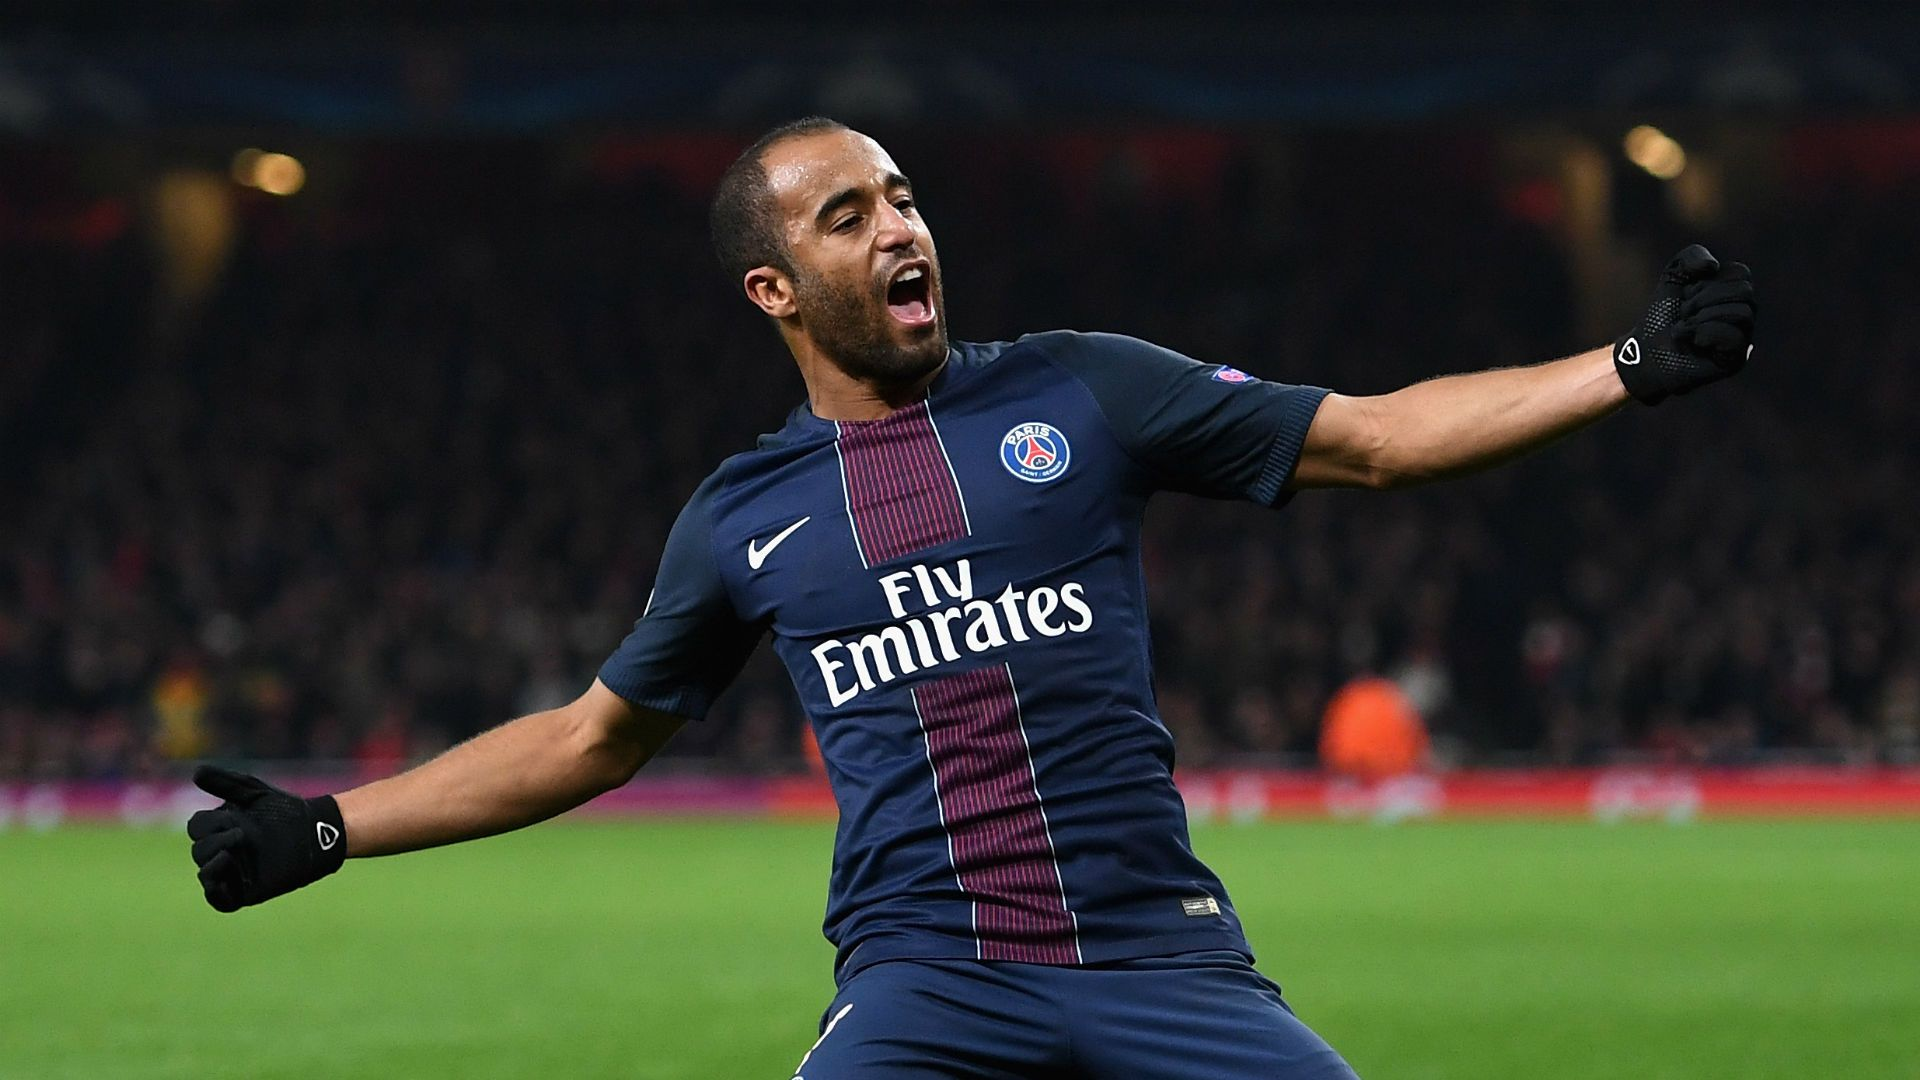 Neymar said he is saddened by Lucas Moura's imminent move